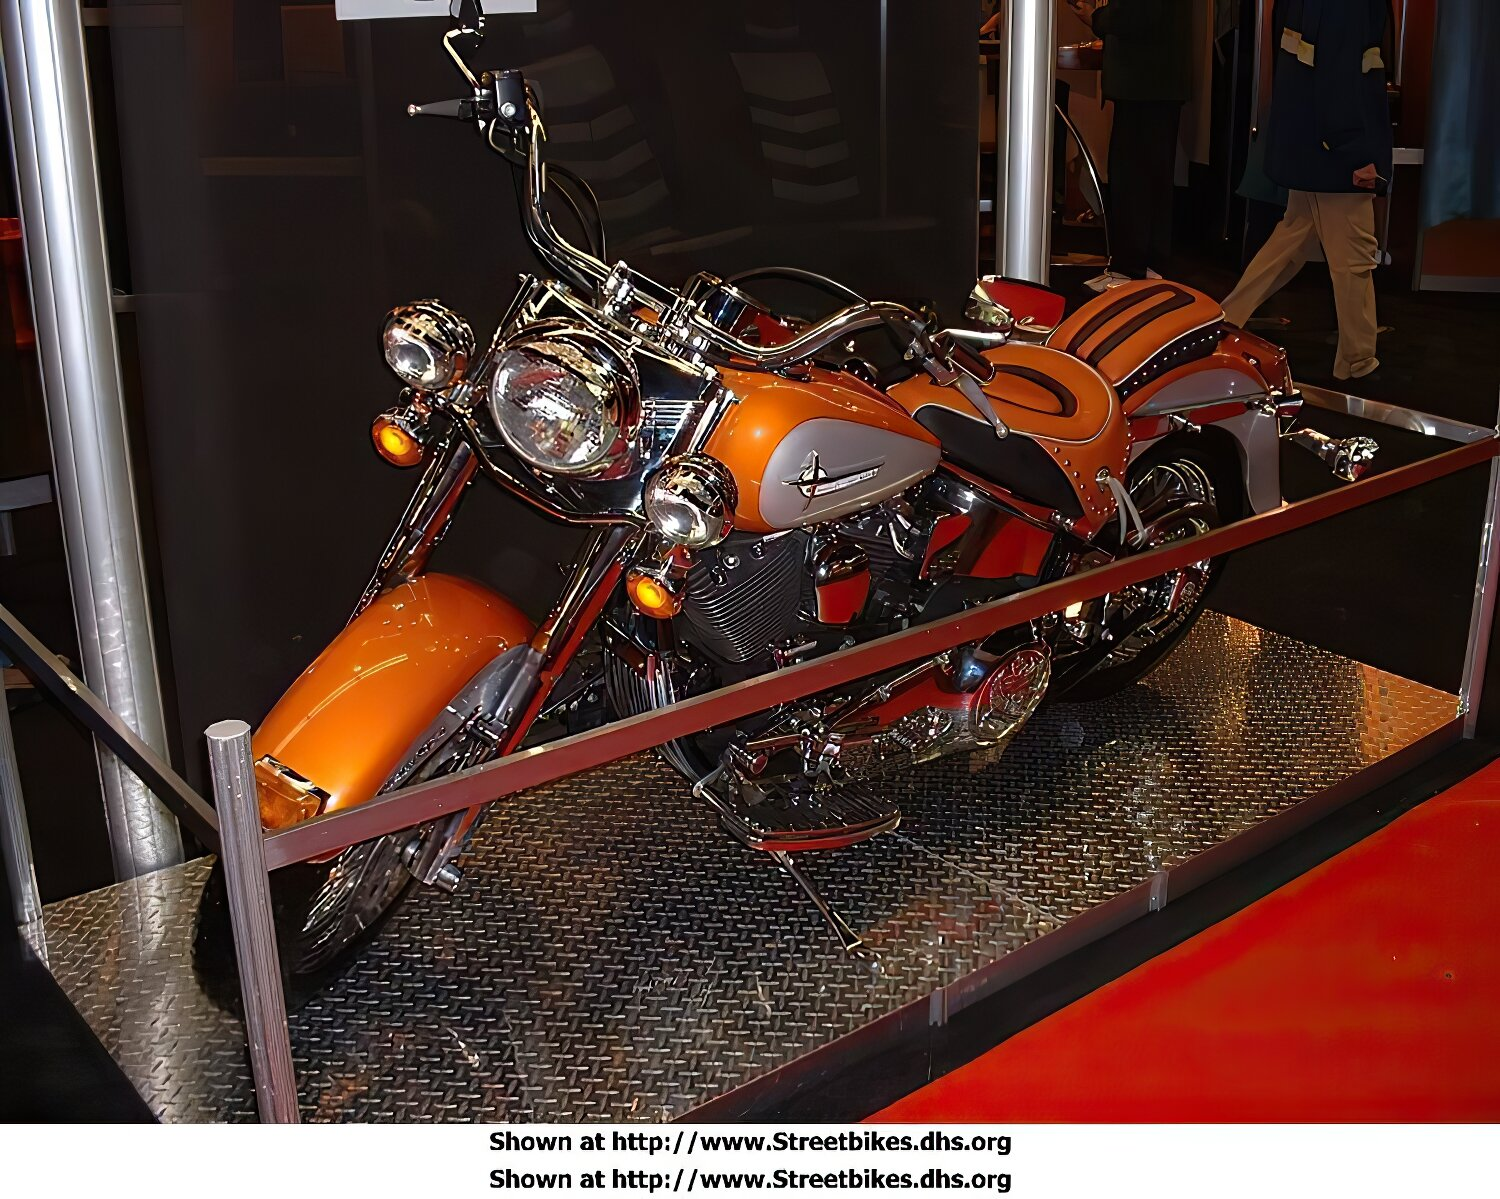 Harley-Davidson Unknown (HD) - ID: 1213